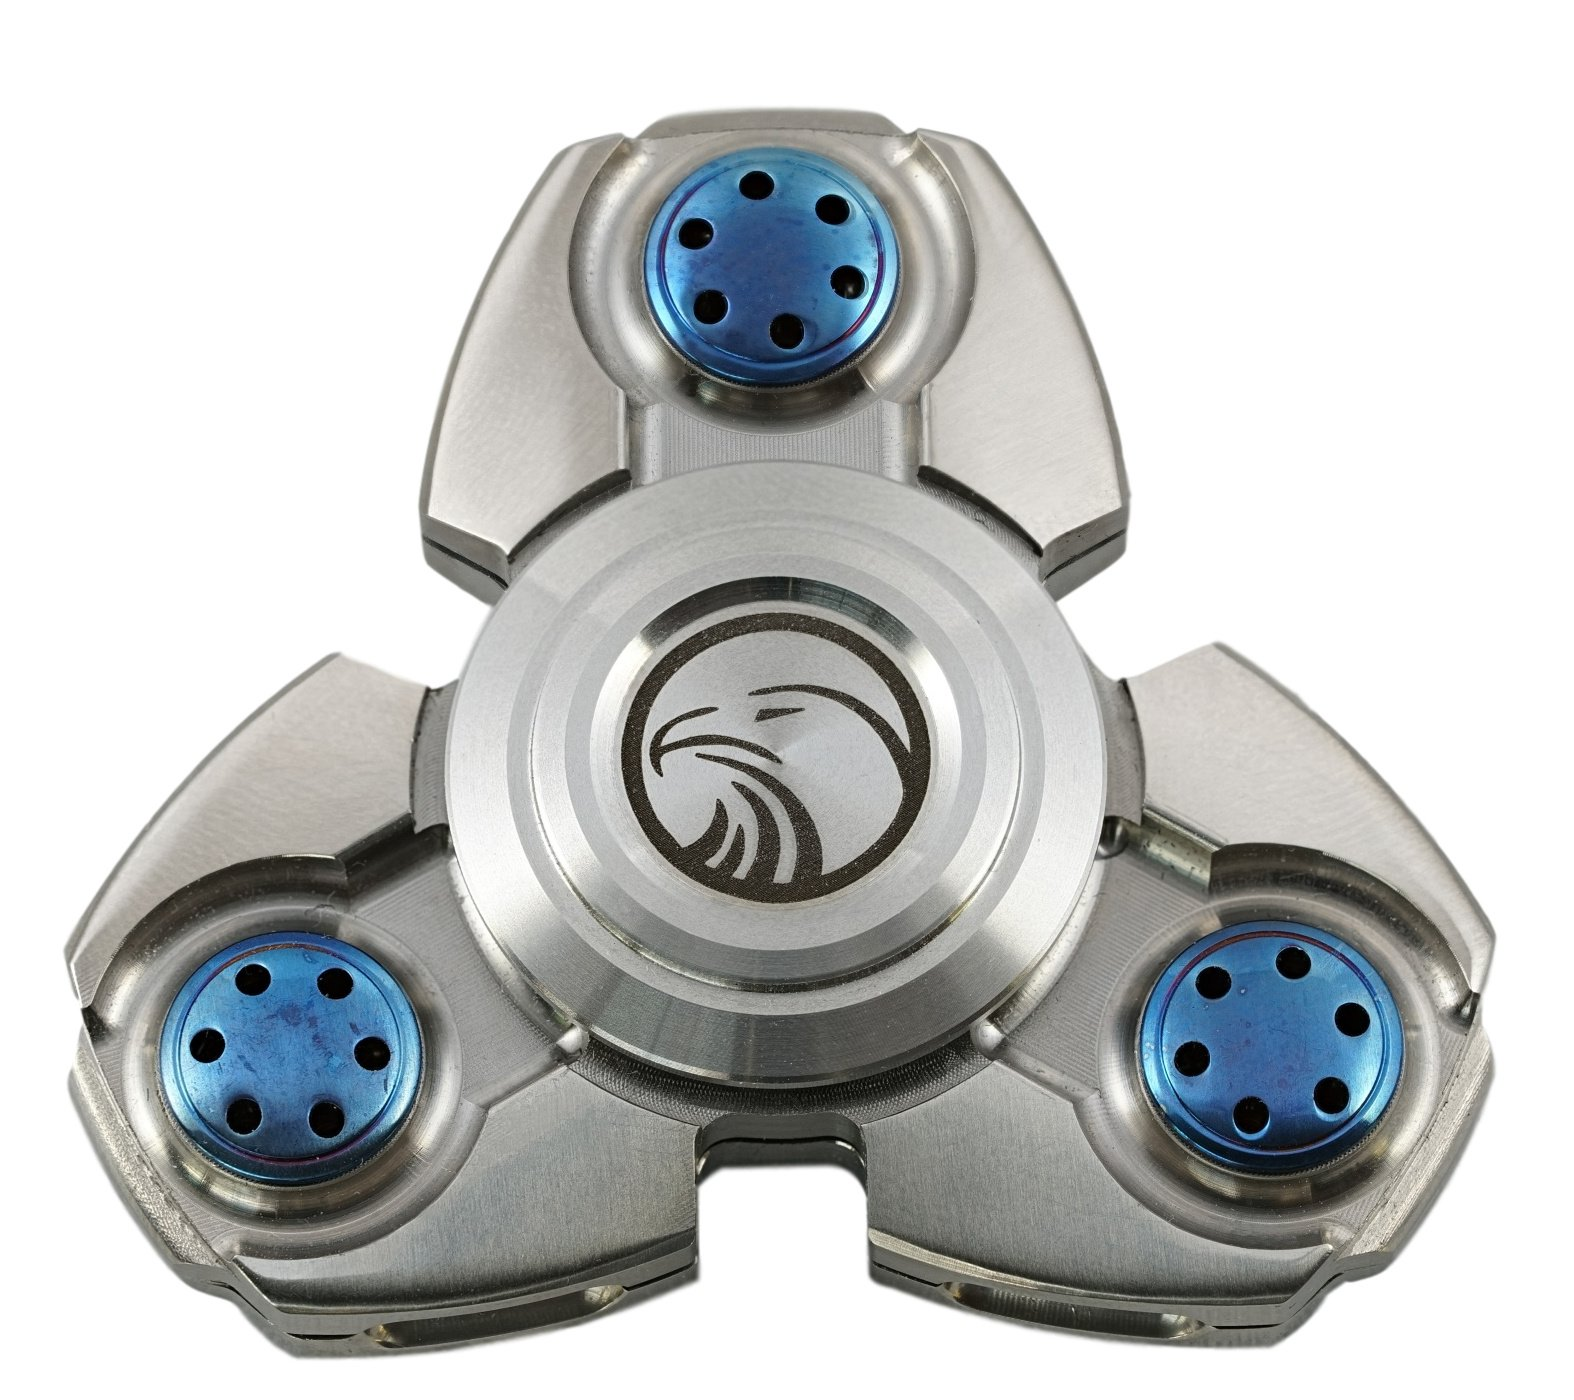 Valtcan Titanium Fidget Spinner Gyroscope by Valtcan (Image #7)